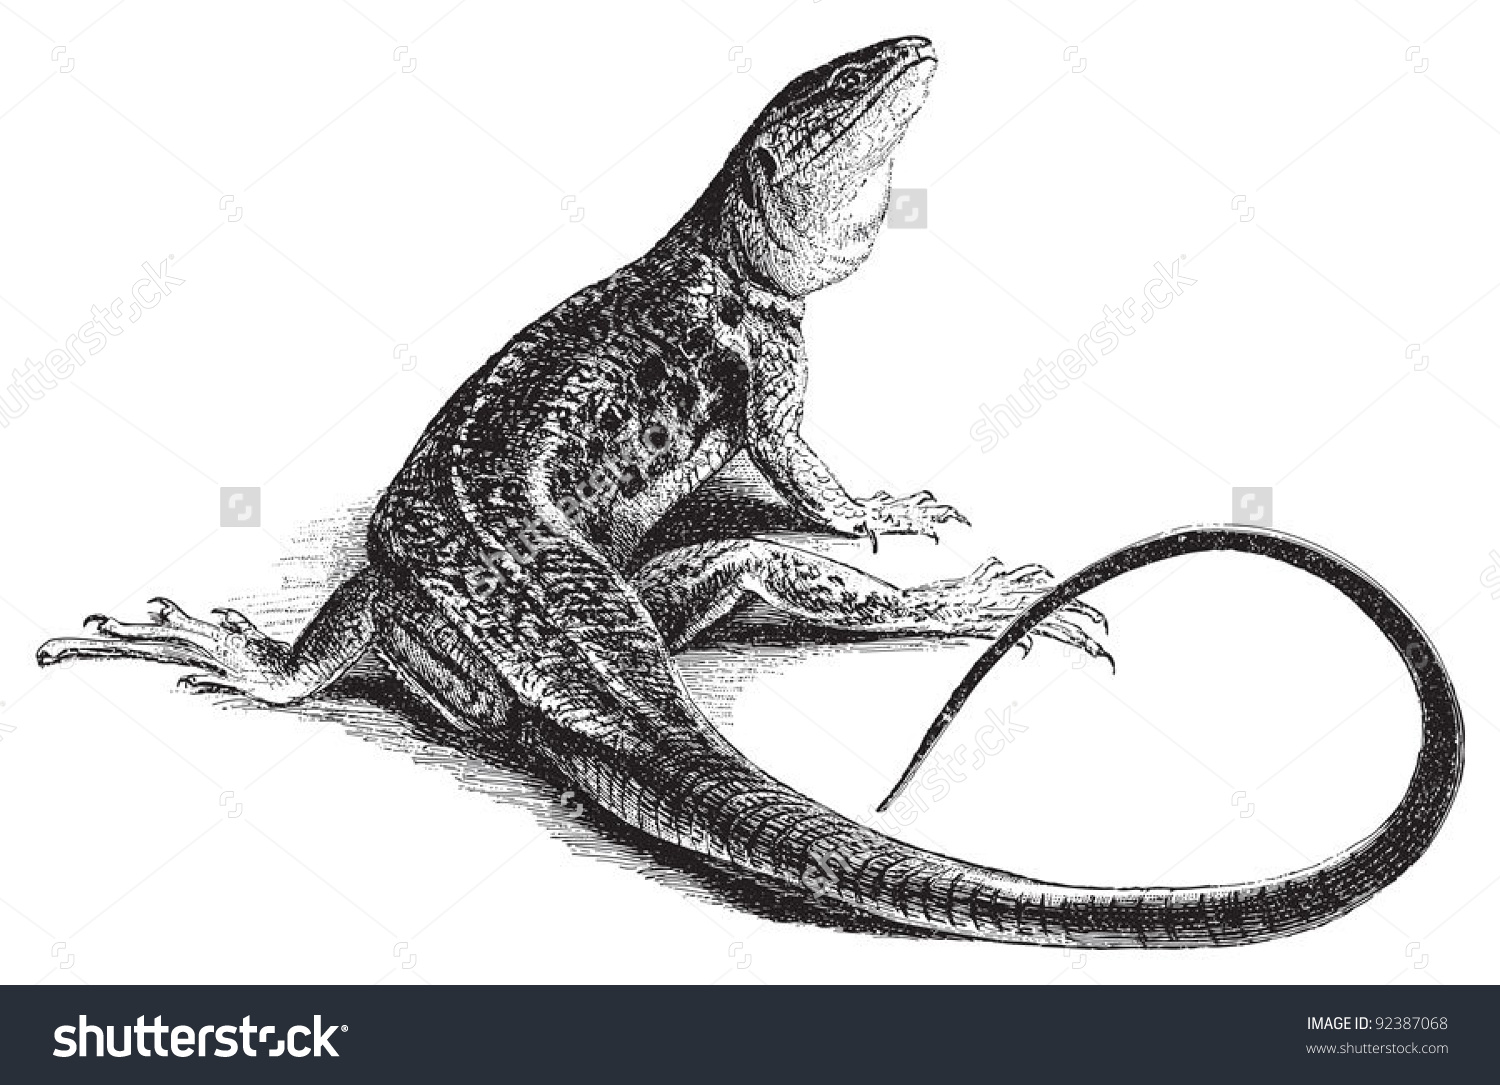 Ocellated Lizard clipart #15, Download drawings